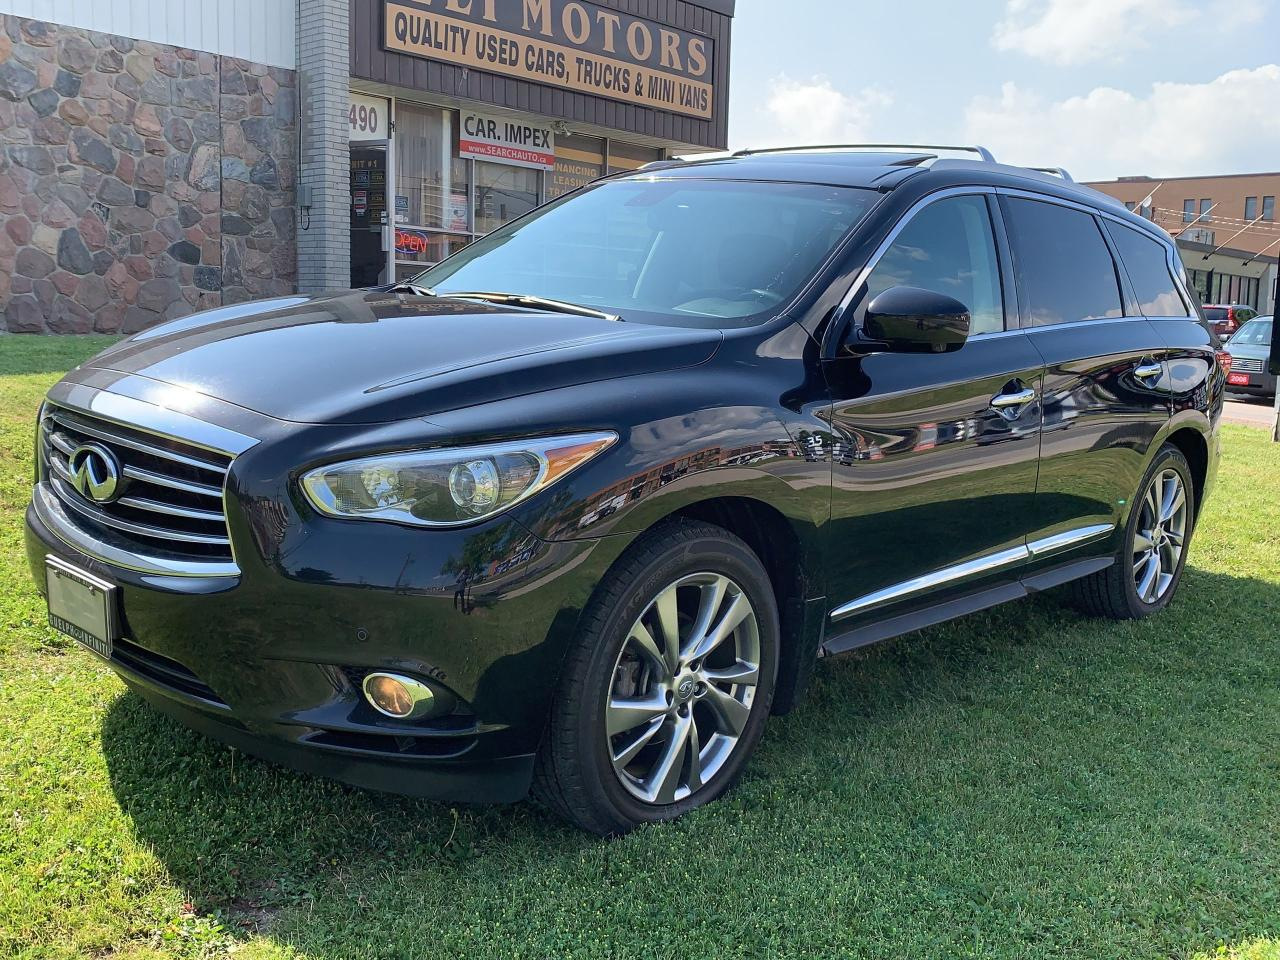 Used 2015 Infiniti QX60 for Sale in North York, Ontario